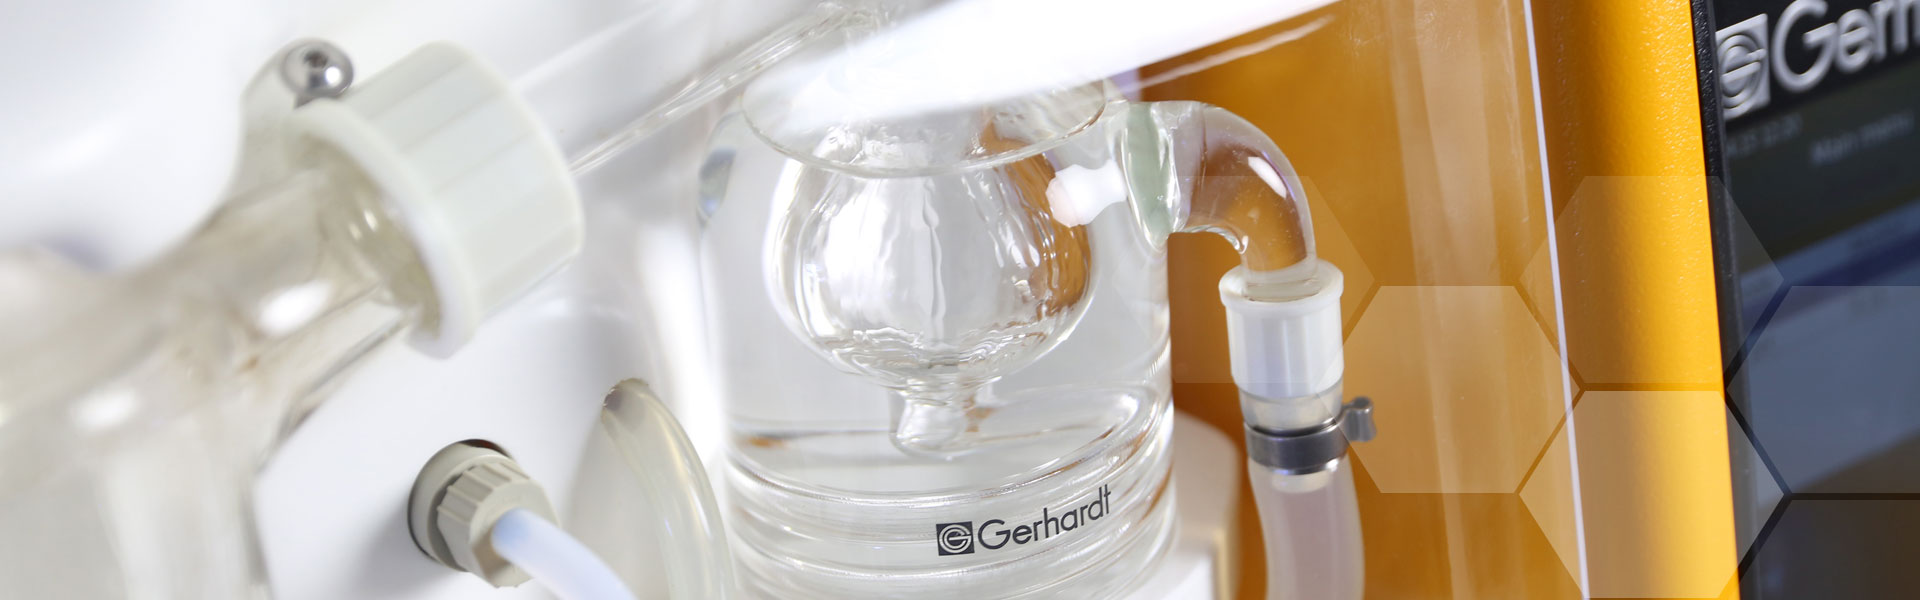 Gerhardt Laboratory Equipment for almost every industry across the world